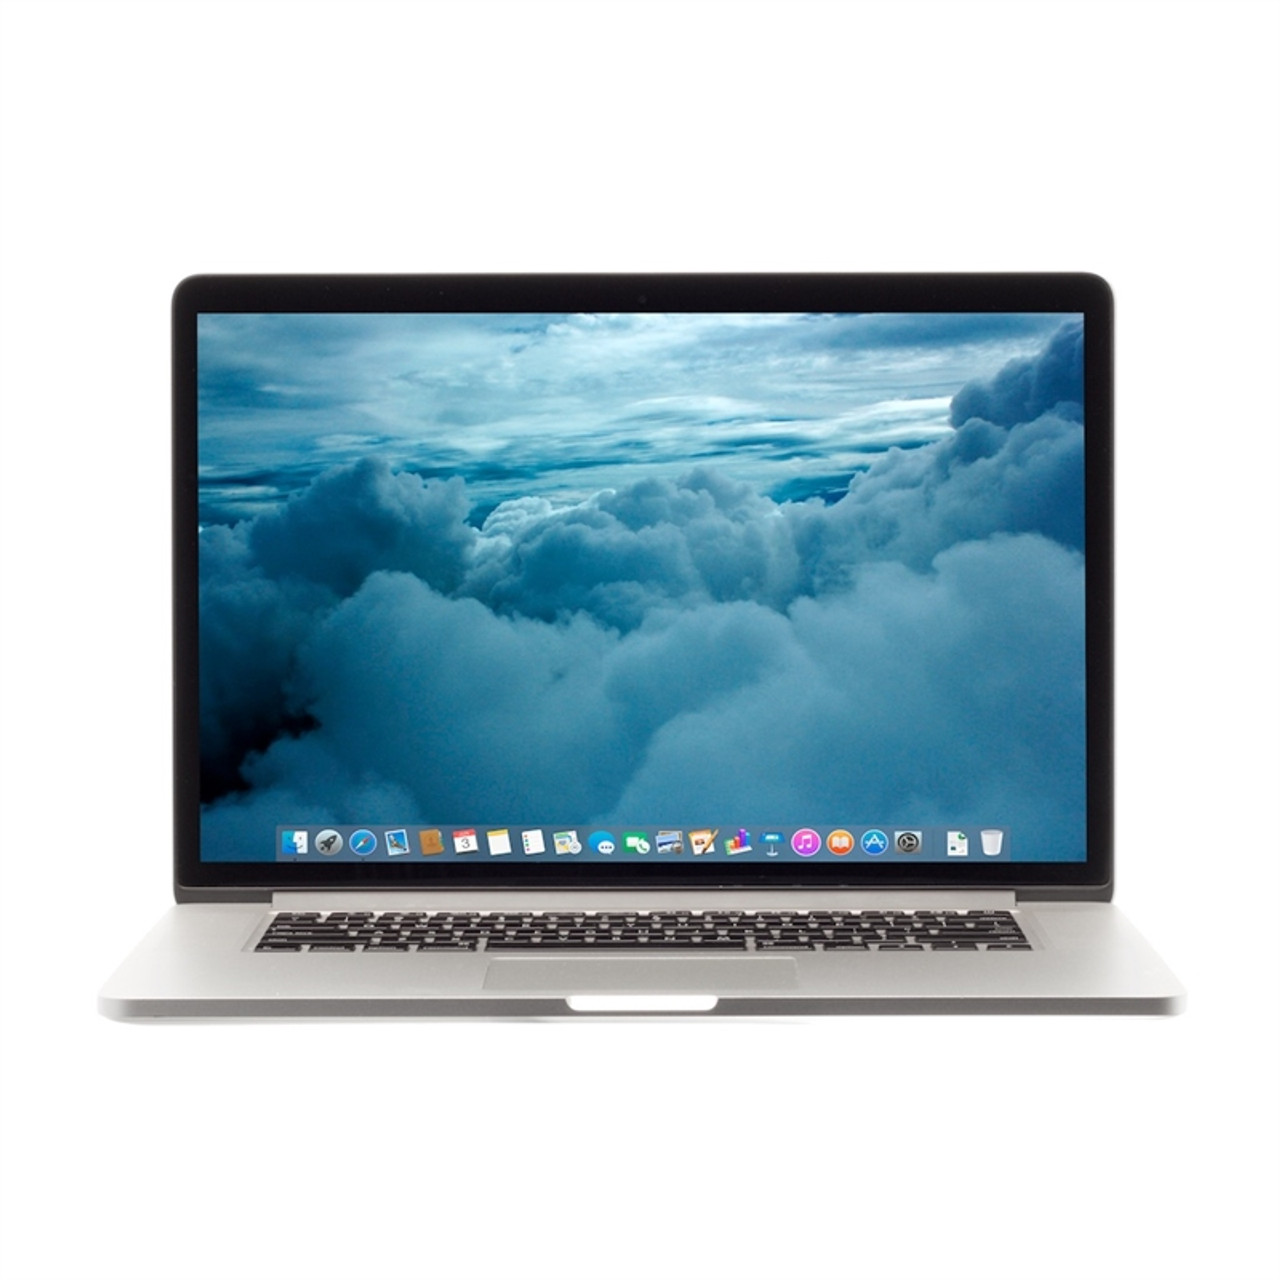 Apple MacBook Pro 15-inch 2 3GHz Quad-core i7 (Retina, Mid 2012) MC975LL/A  9 - Good Condition